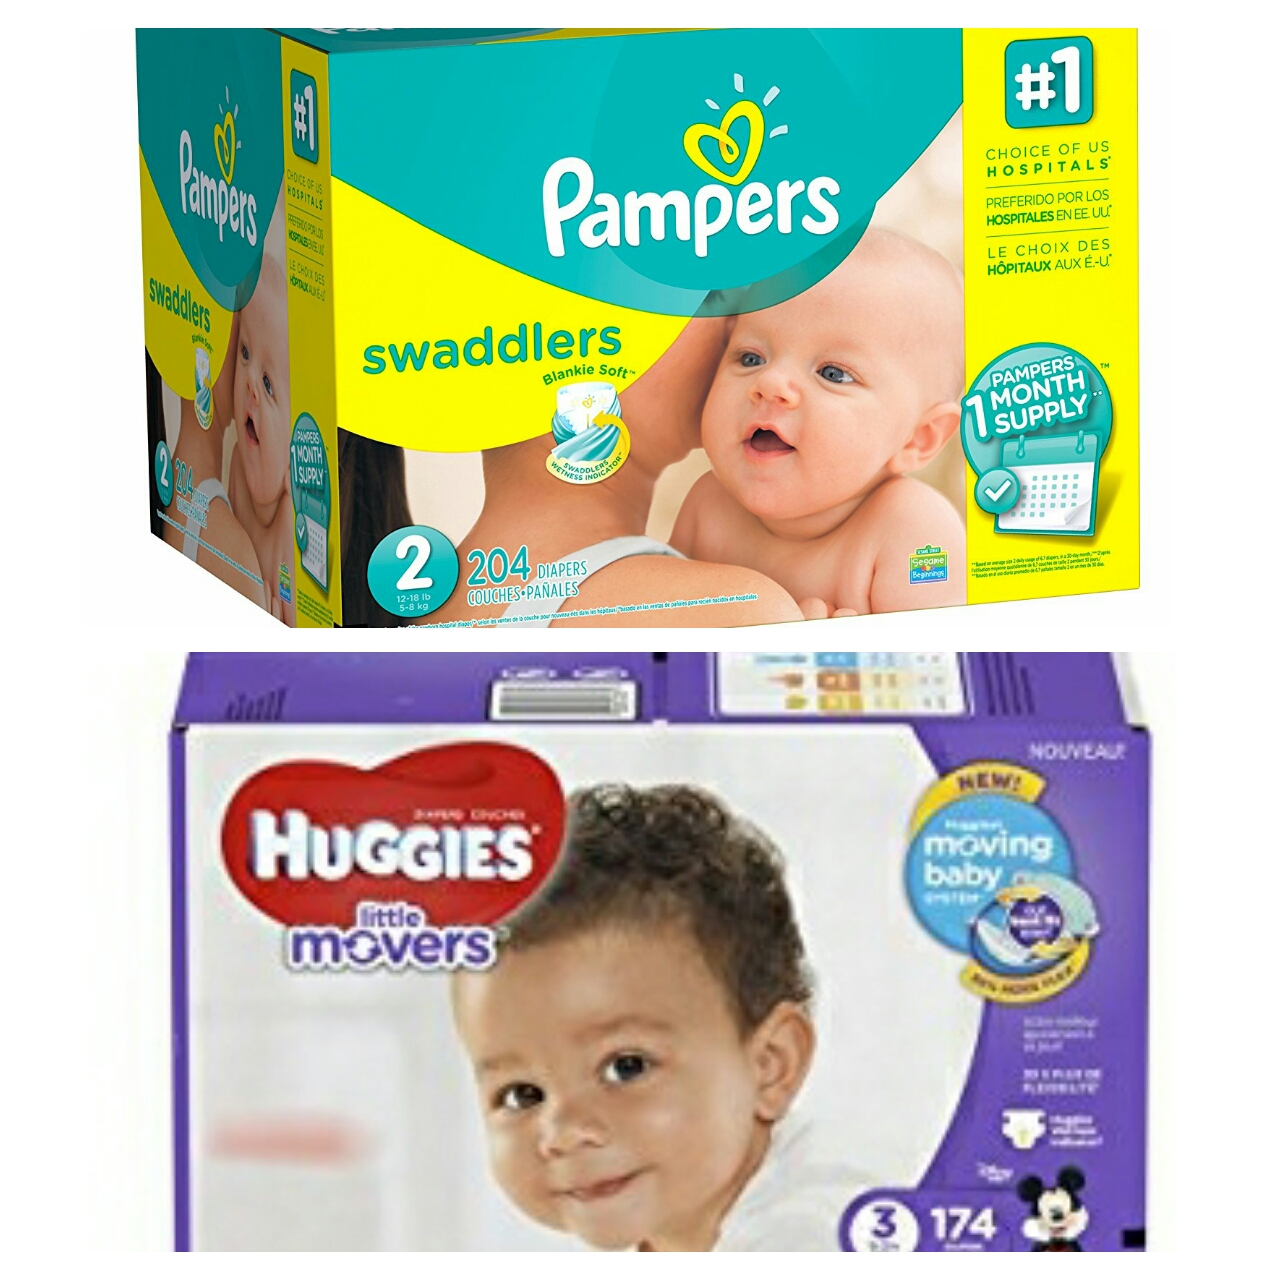 Are diapers harmful